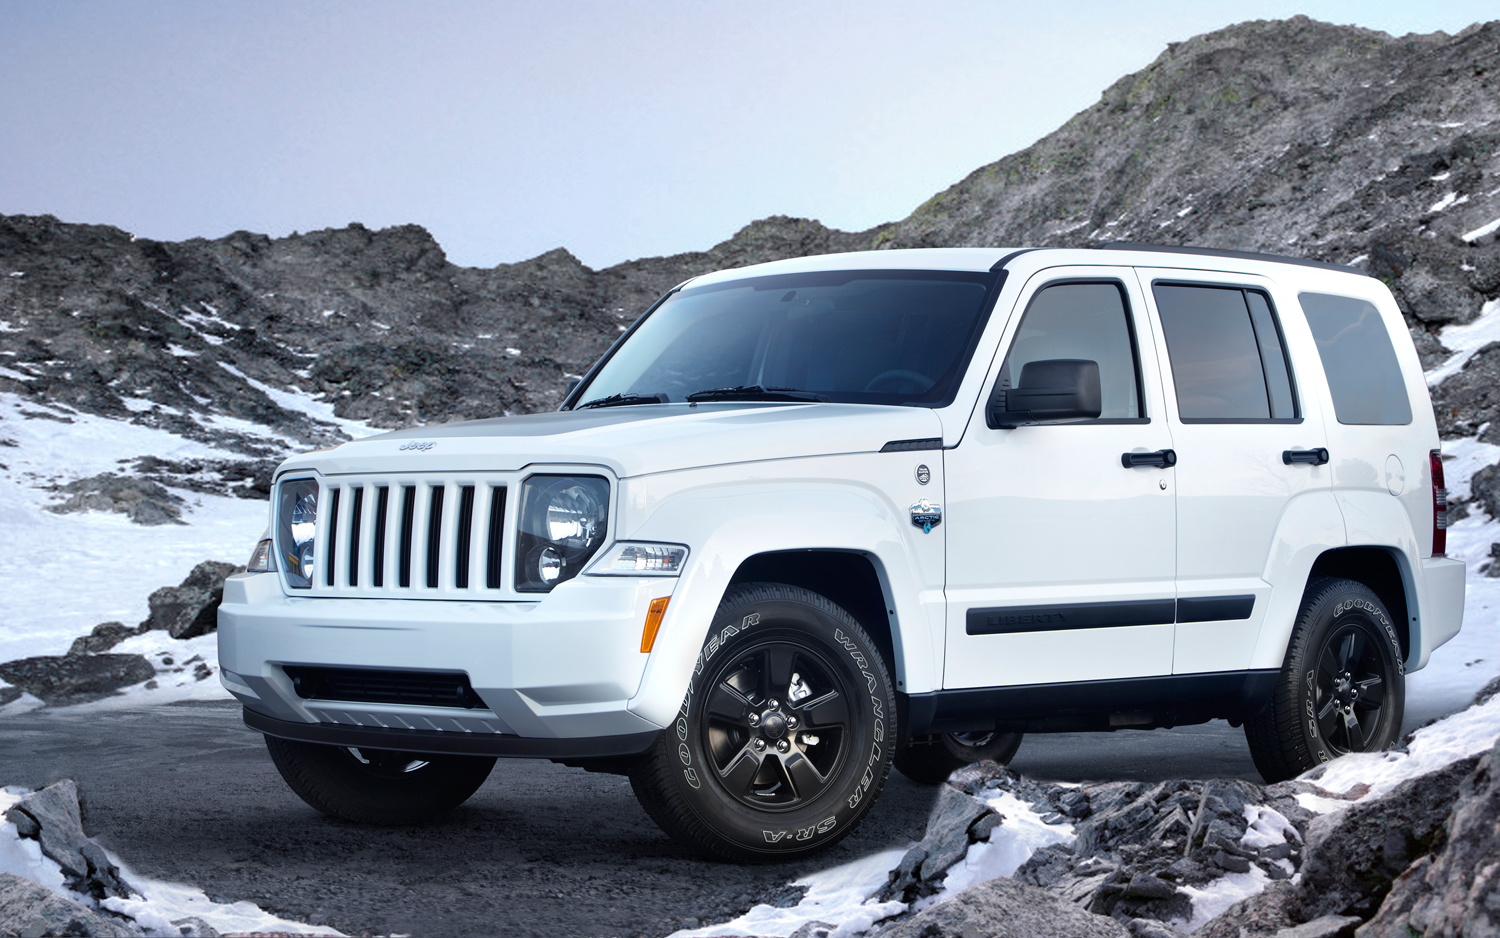 Amazing Chrysler 3.7 Liter V 6 In Jeep Liberty, Ram 1500, Ending Production